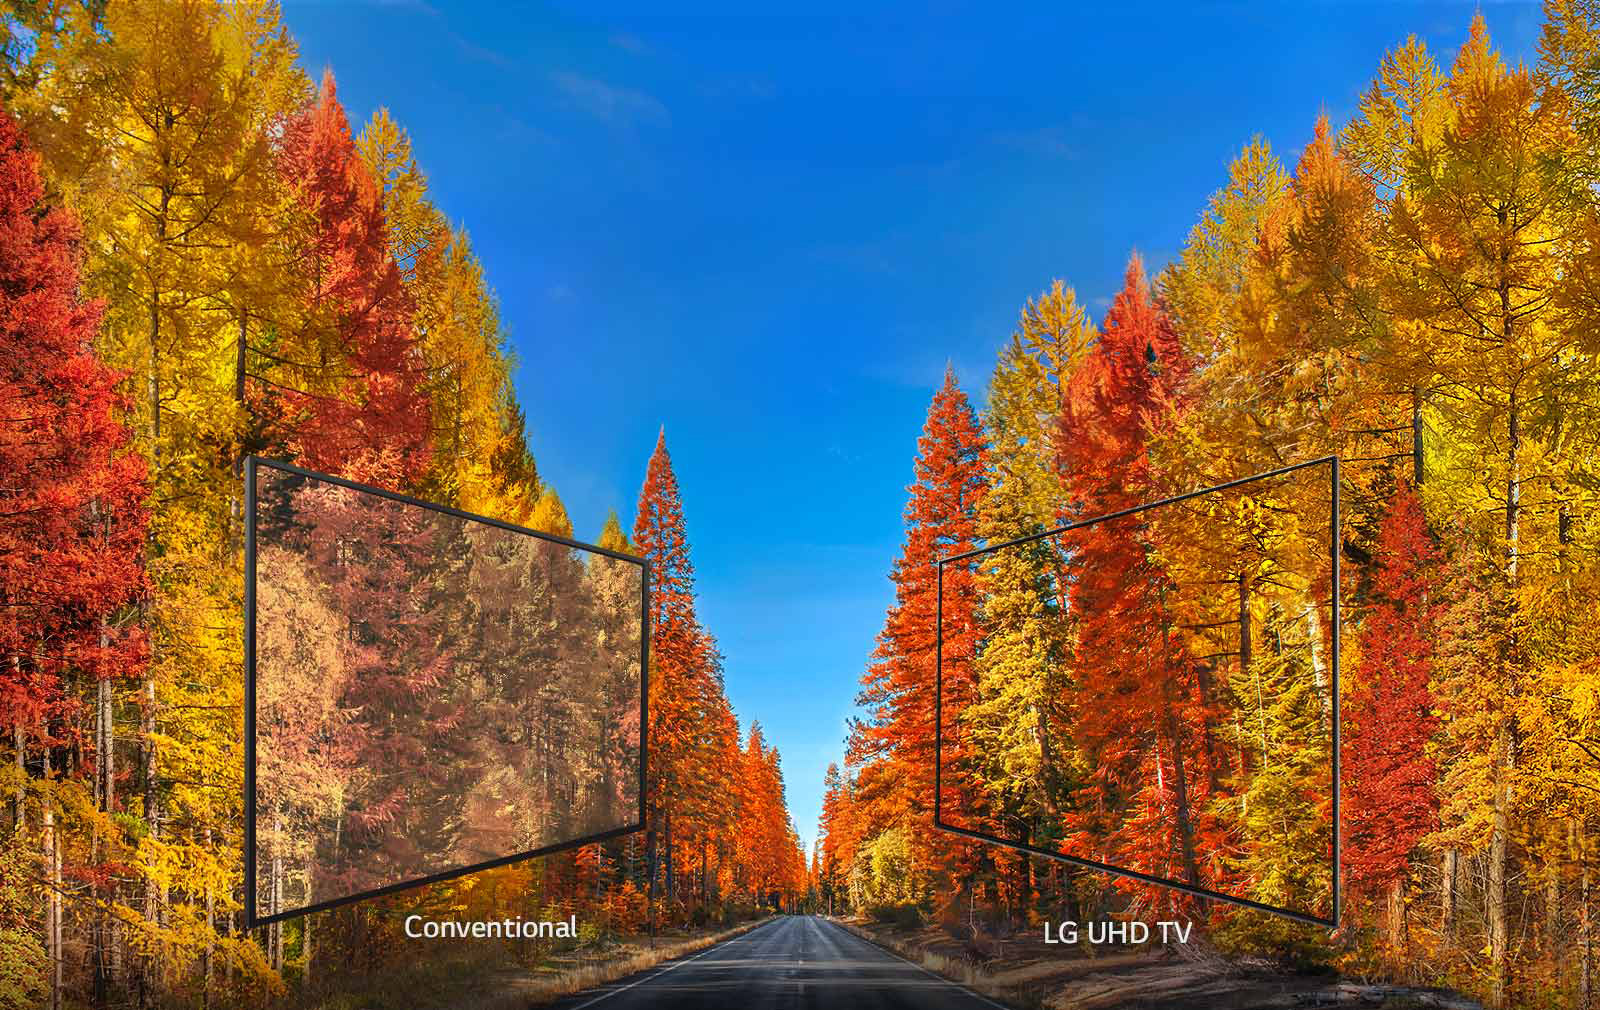 Two displays facing each other mirroring a background image of fall trees with a road running up the middle. The two displays are showing comparisons of conventional versus LG UHD TV picture quality